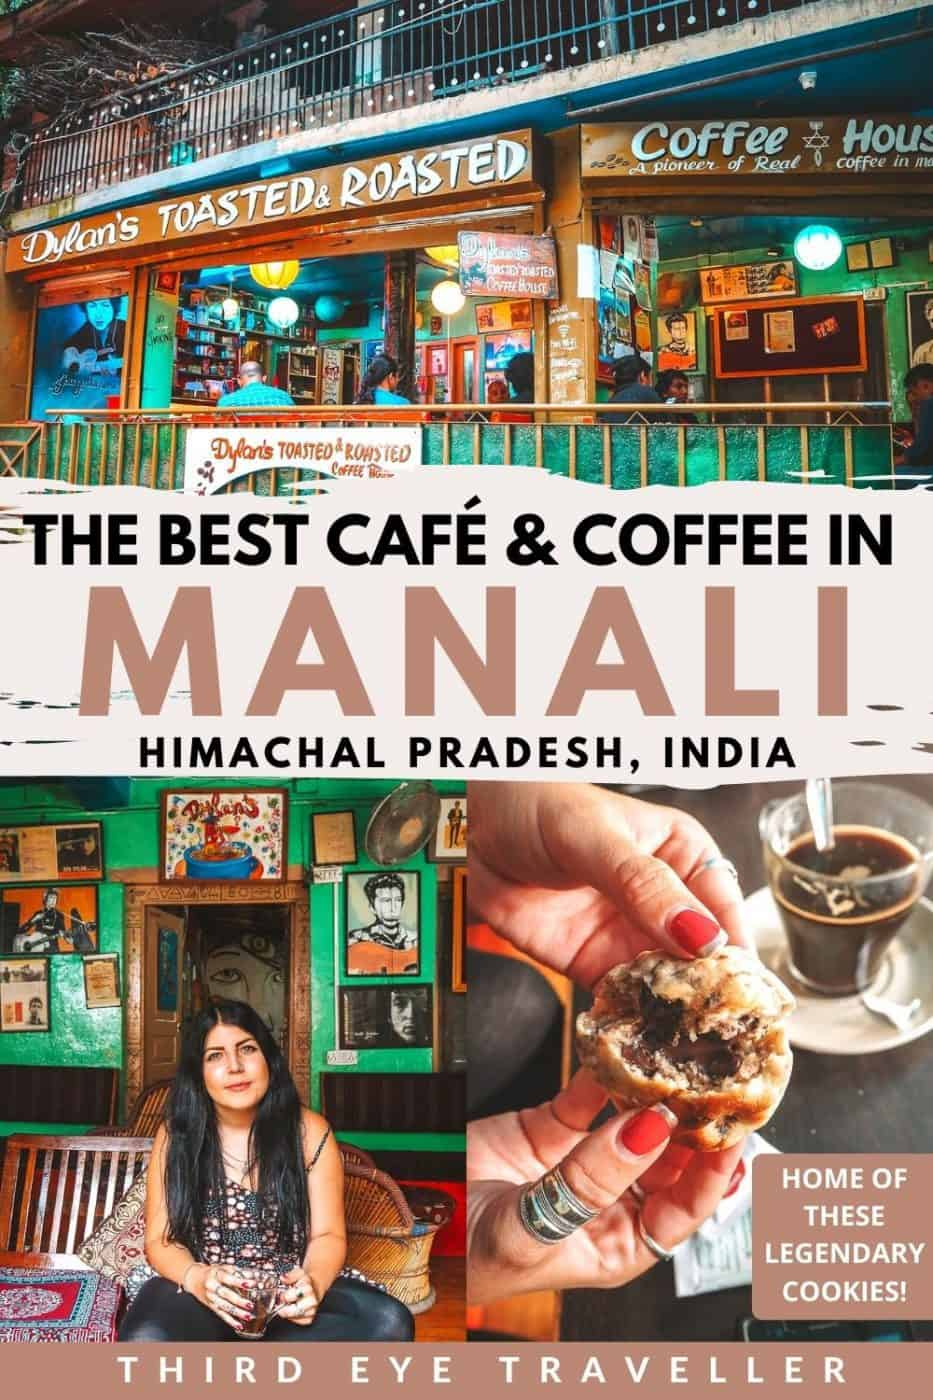 Best cafe in Manali | Dylans Toasted and Roasted Coffee House Old Manali